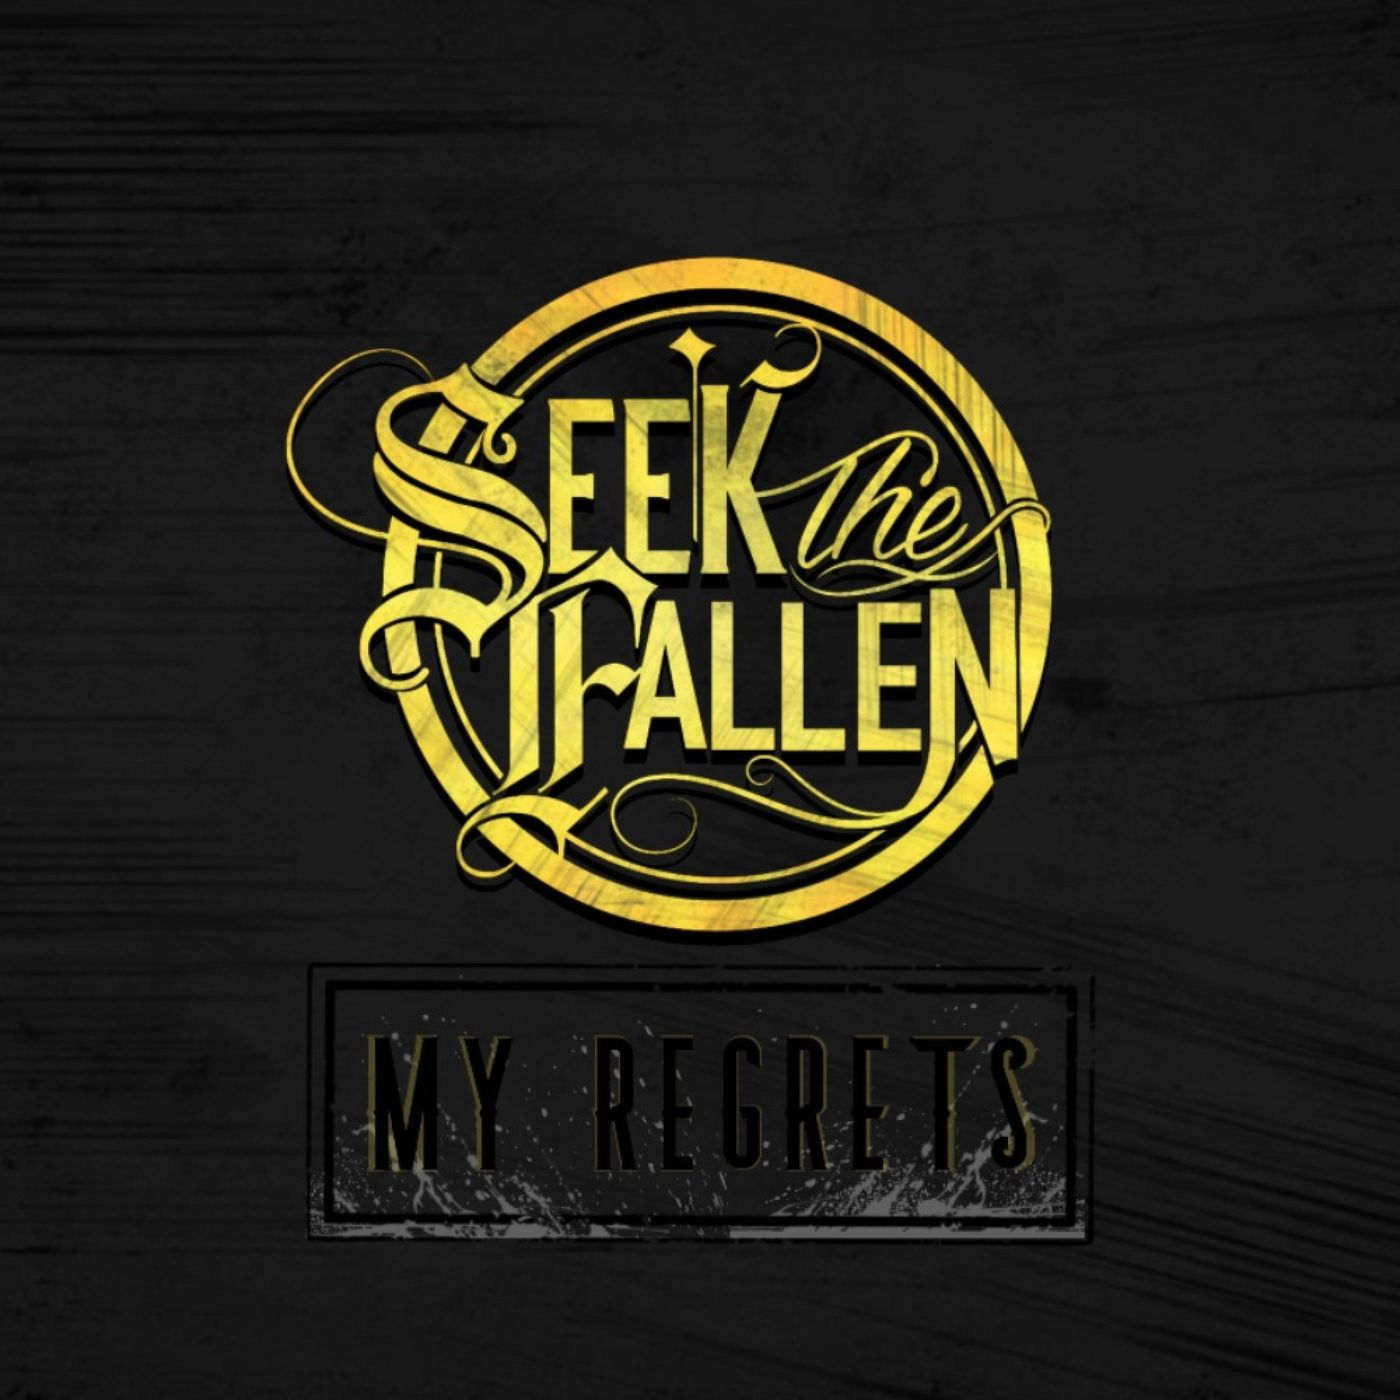 Seek the Fallen - My Regrets [single] (2020)